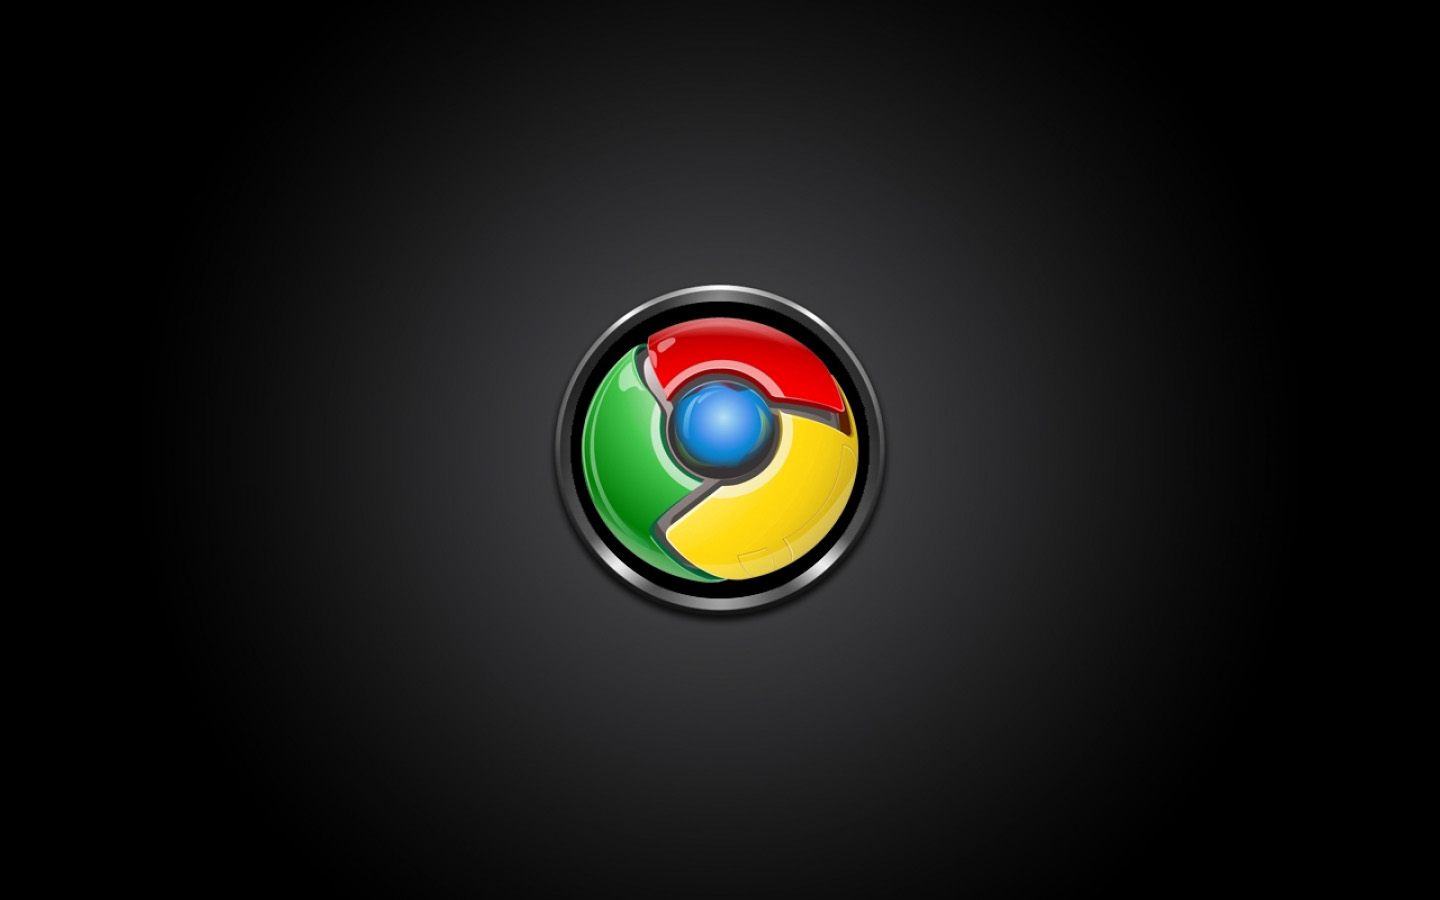 Background image for google - Google Chrome Wallpaper Background Wallpapersafari